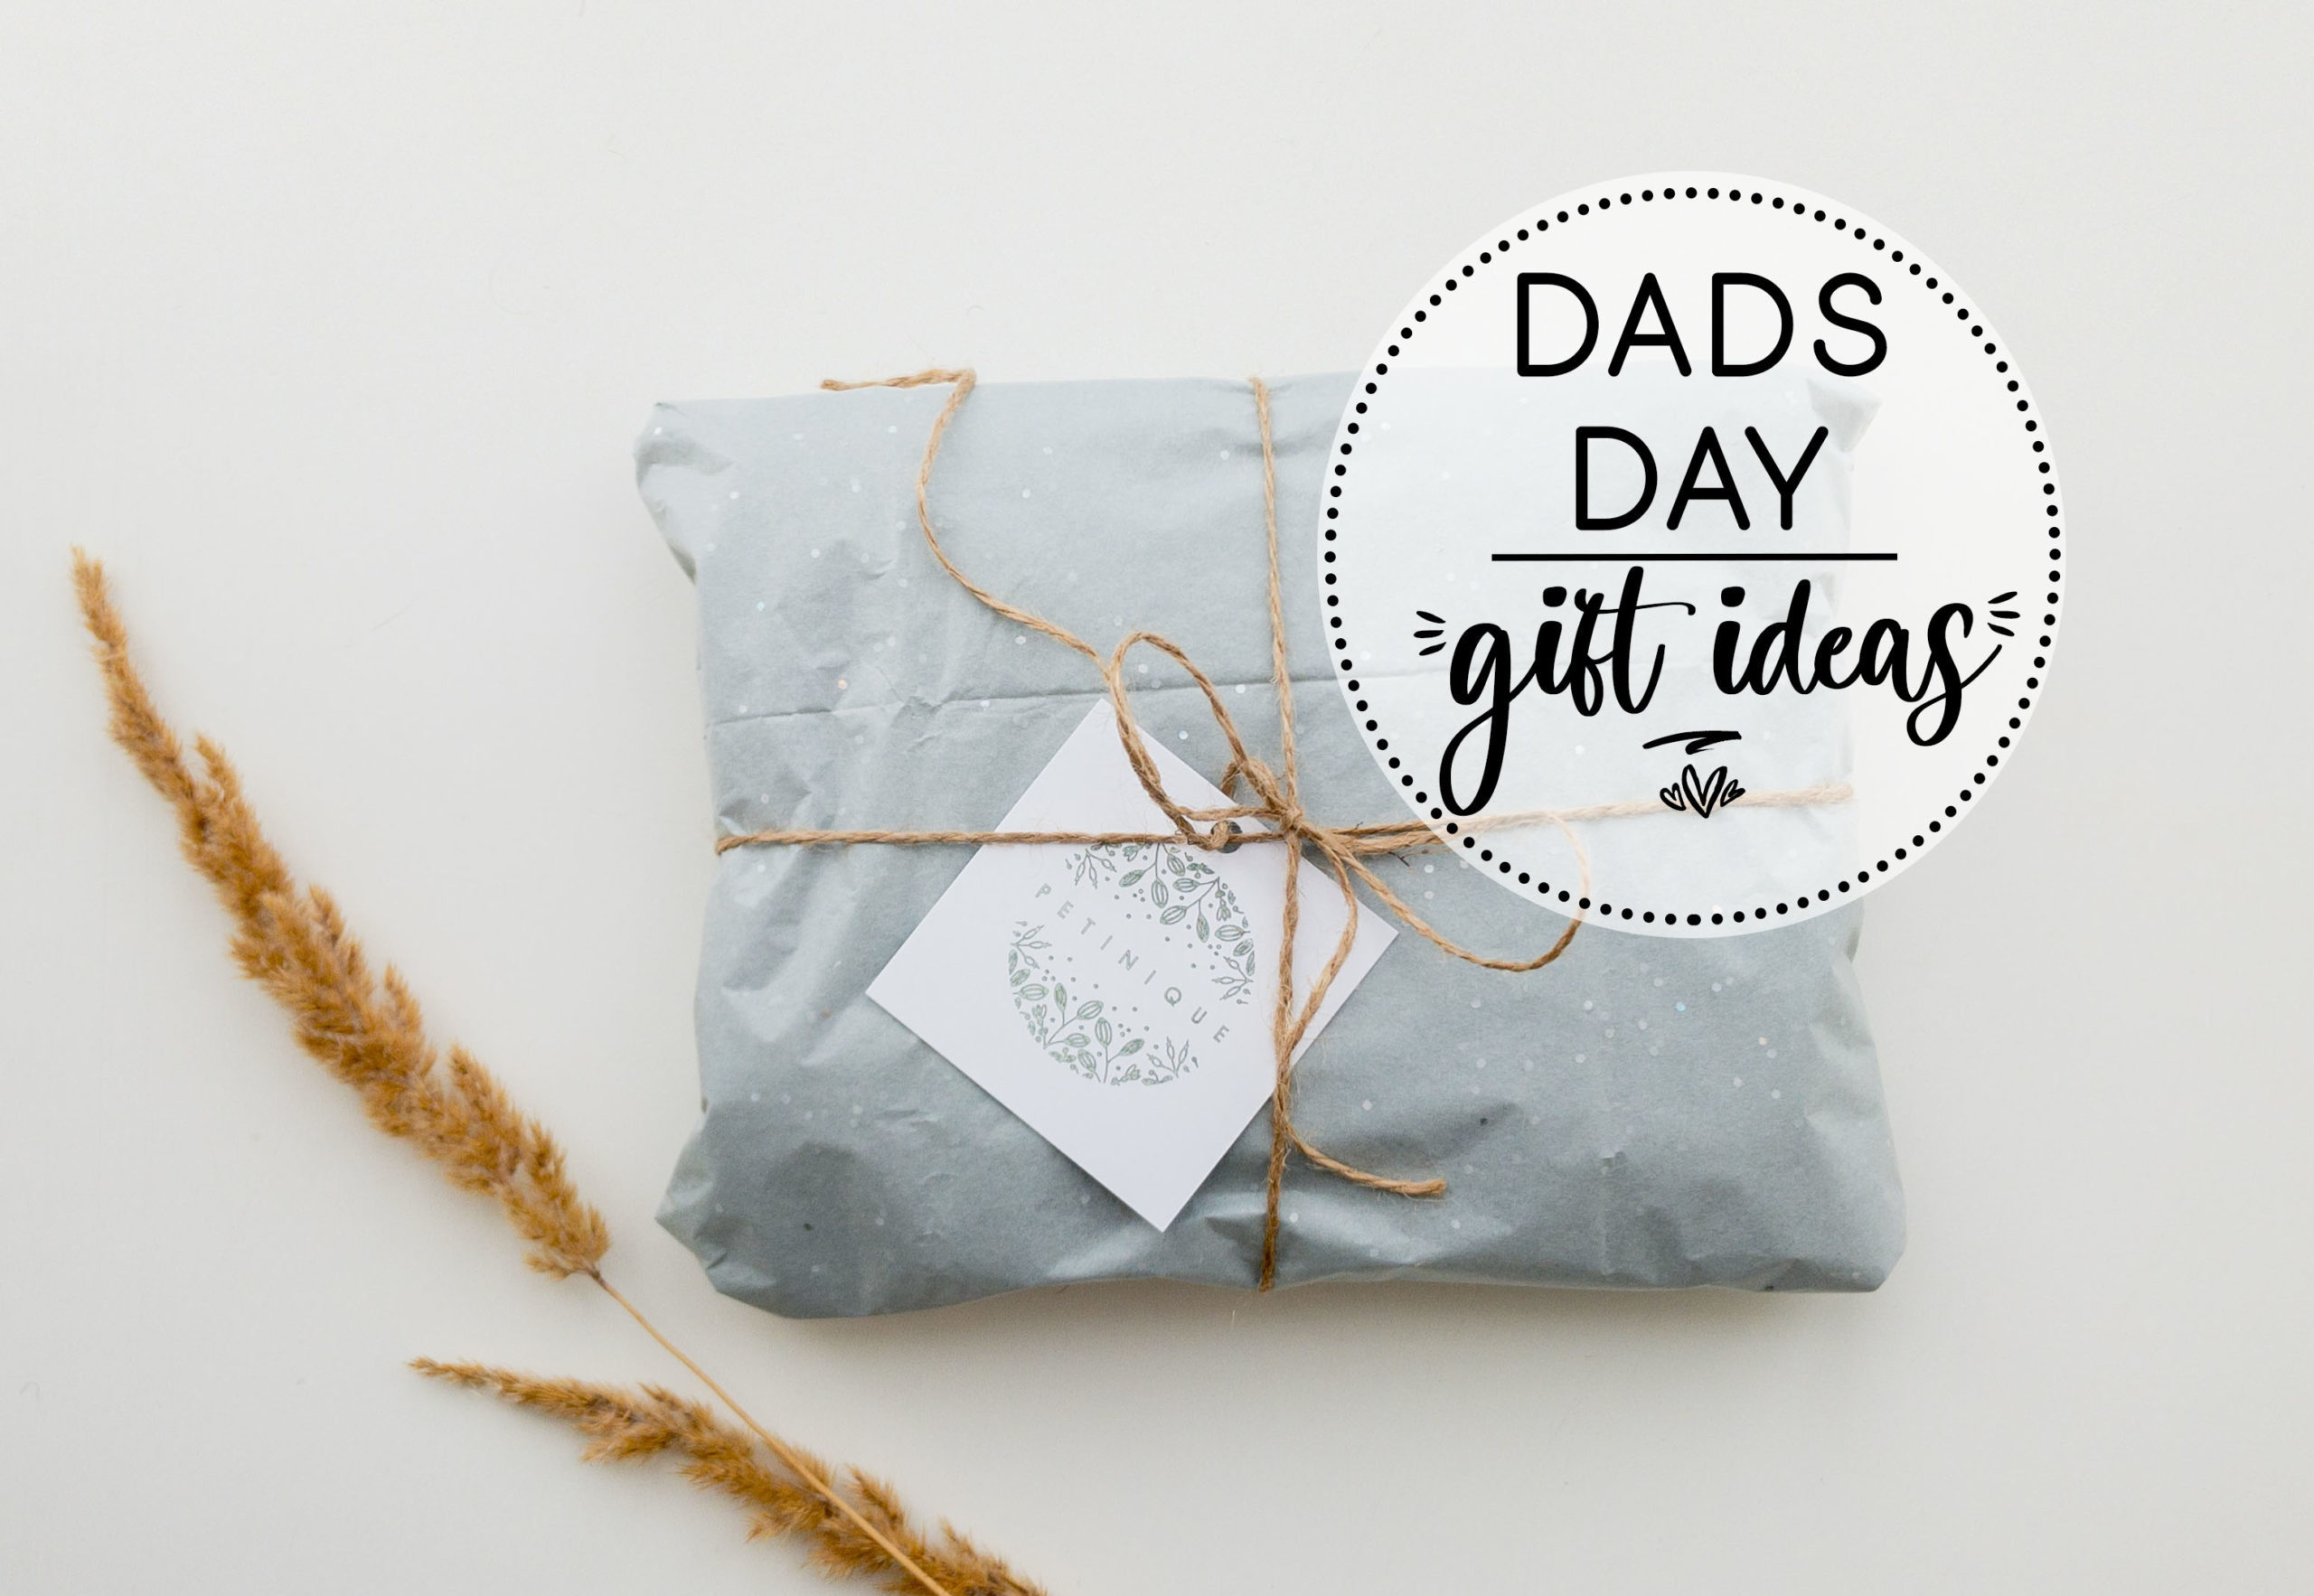 Dads Day Gift Ideas